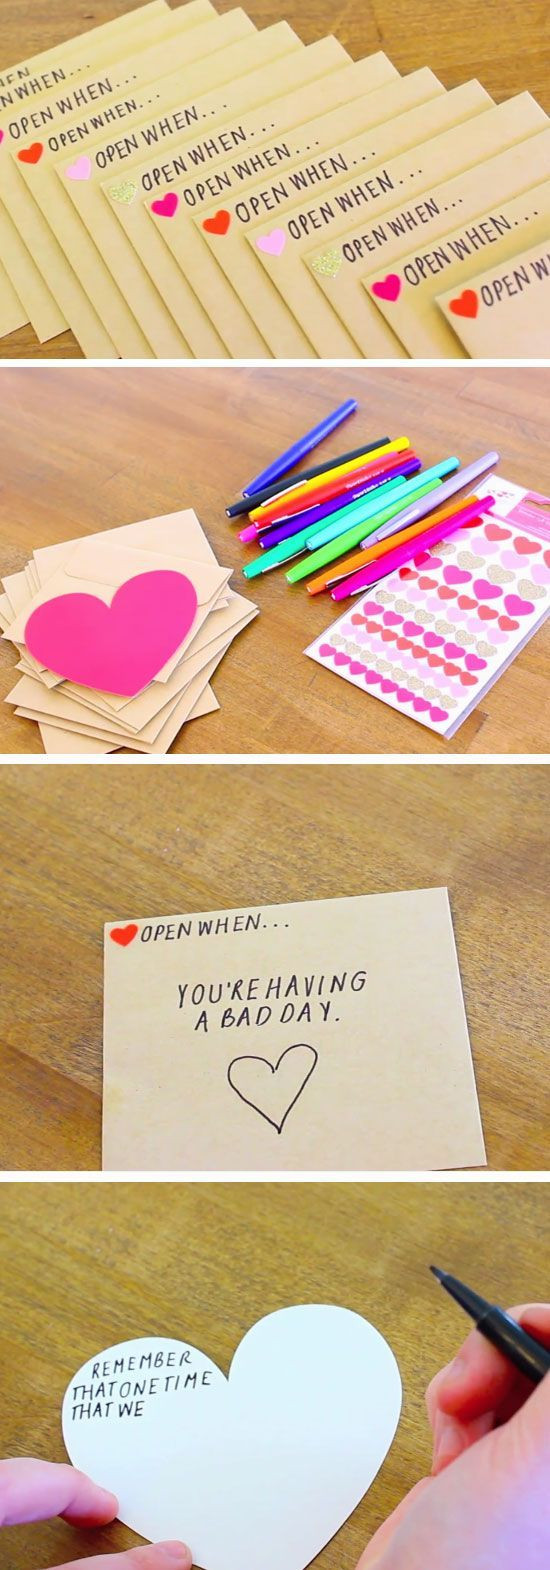 Best ideas about Diy Birthday Gift Ideas For Boyfriend . Save or Pin 25 best ideas about Diy birthday t on Pinterest Now.